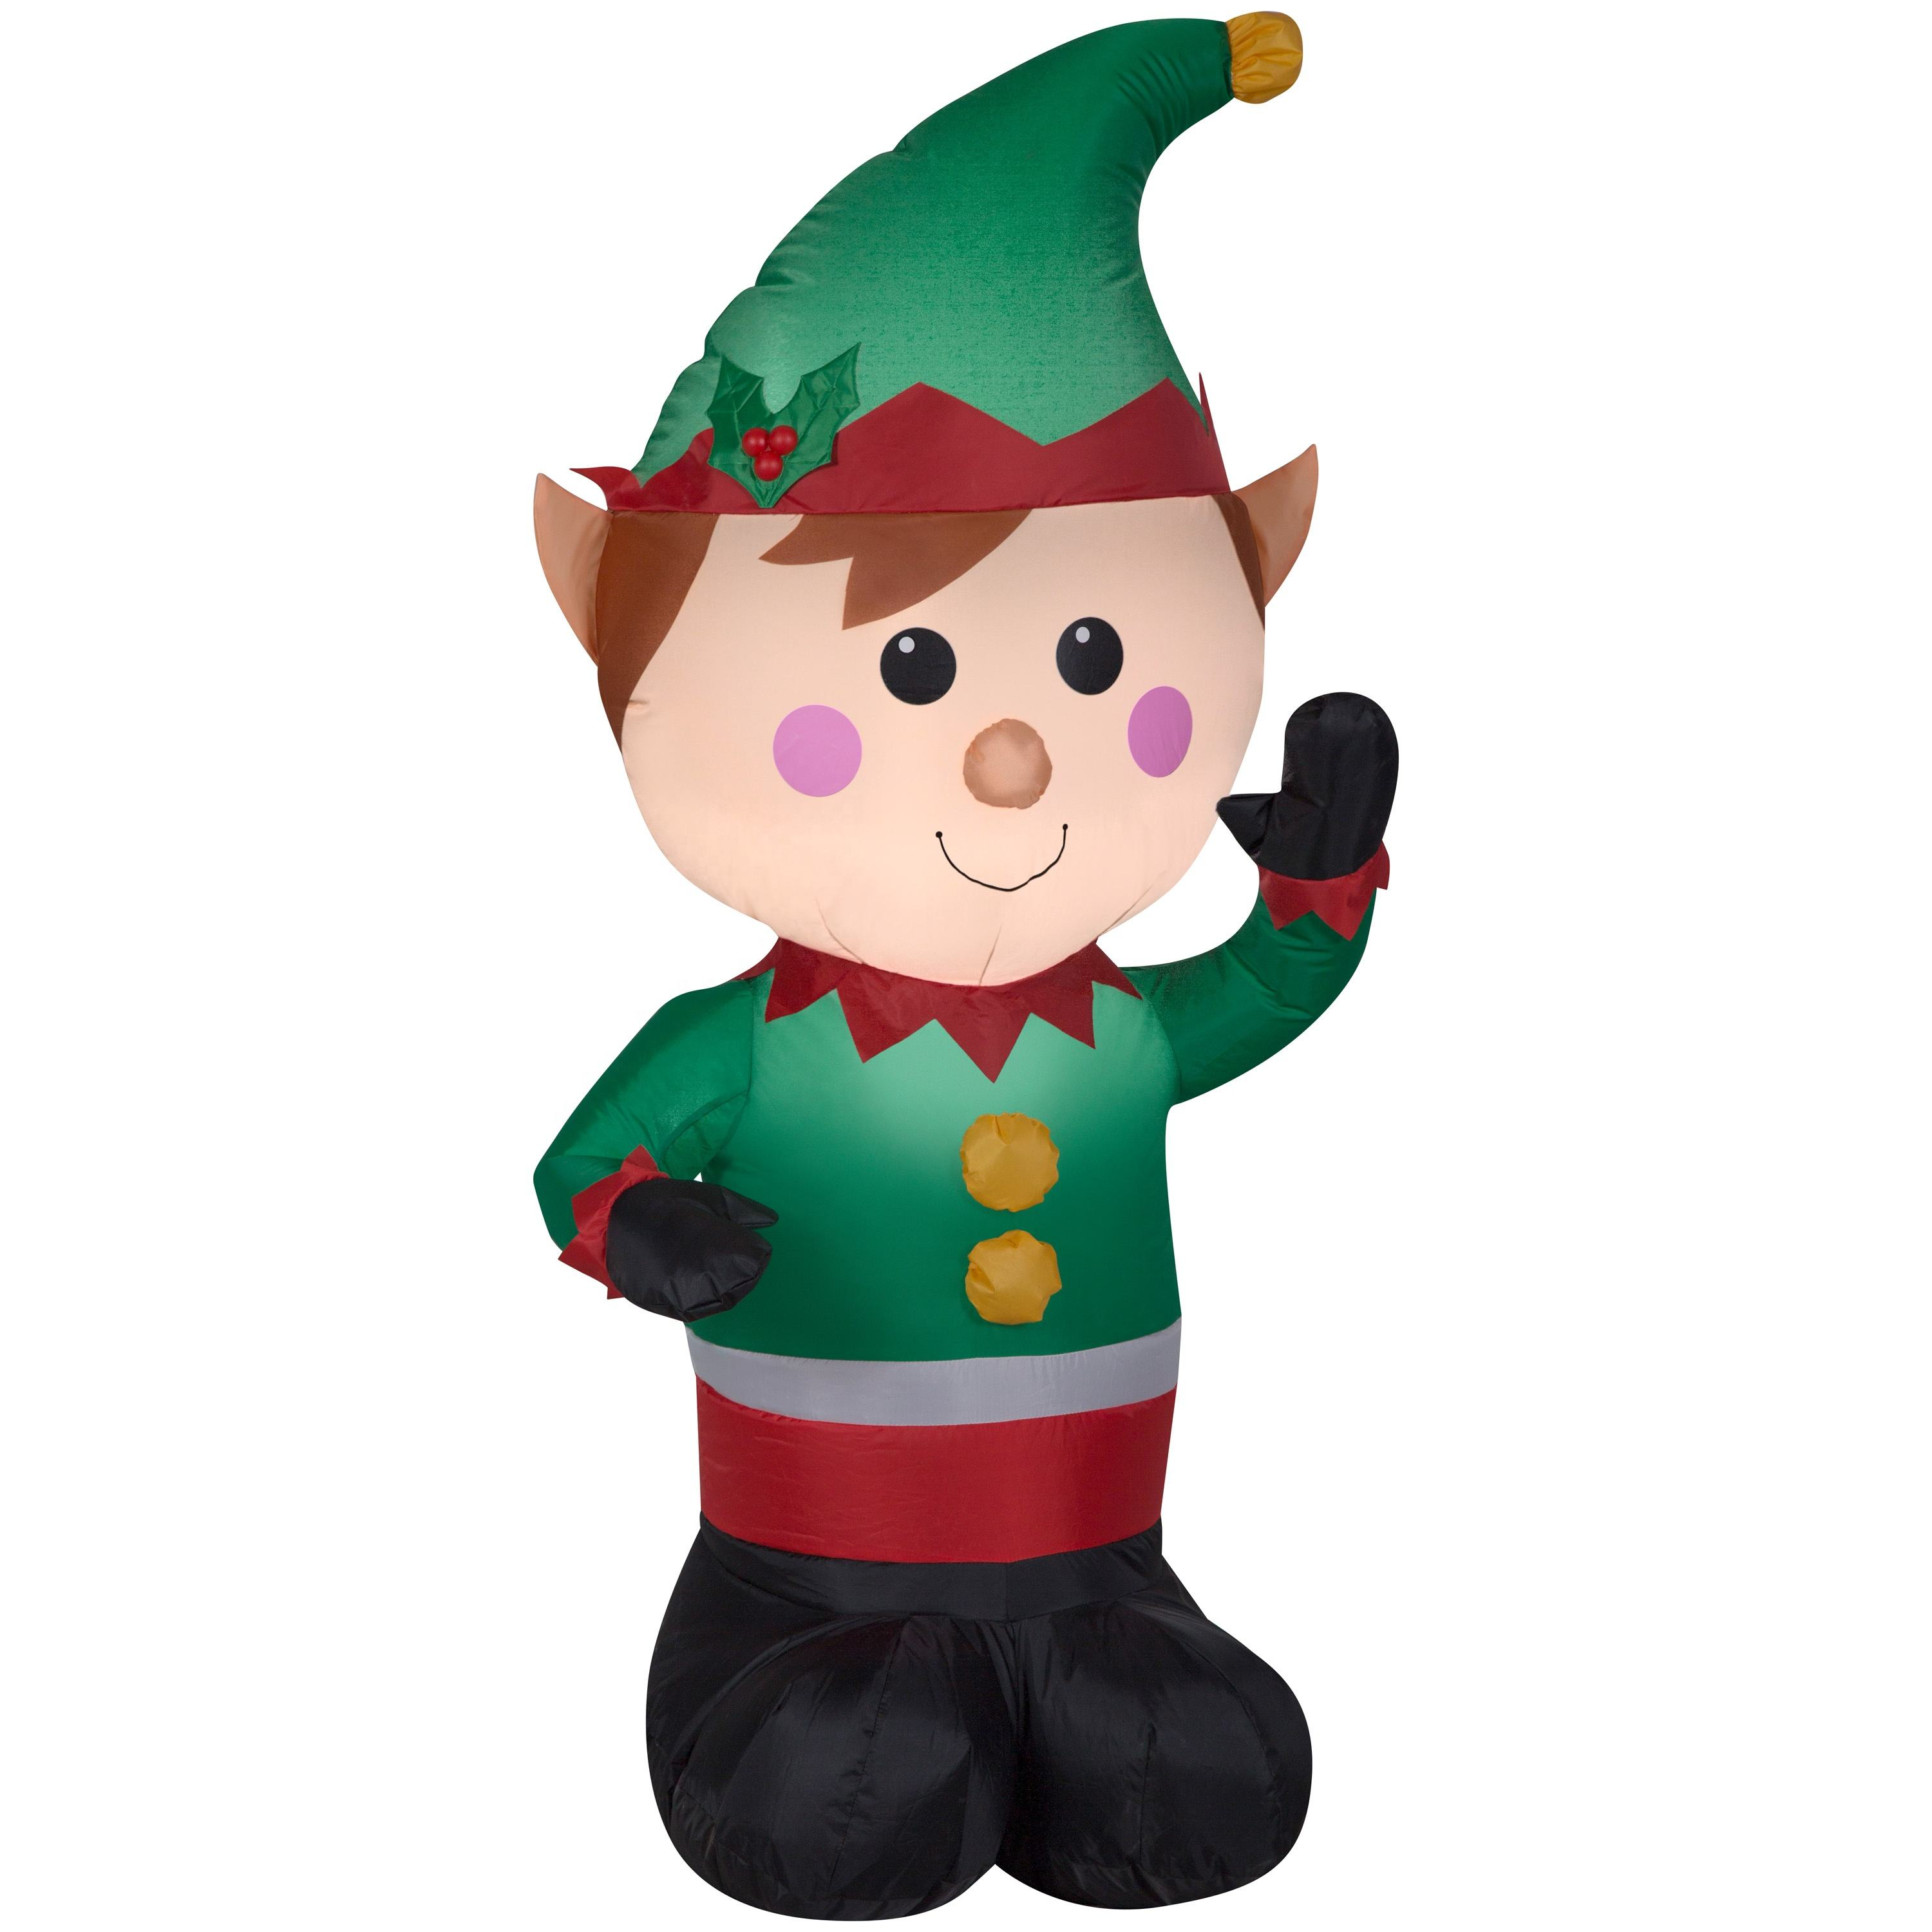 LED yard art decoration 4 foot tall lighted christmas inflatable elf for sale